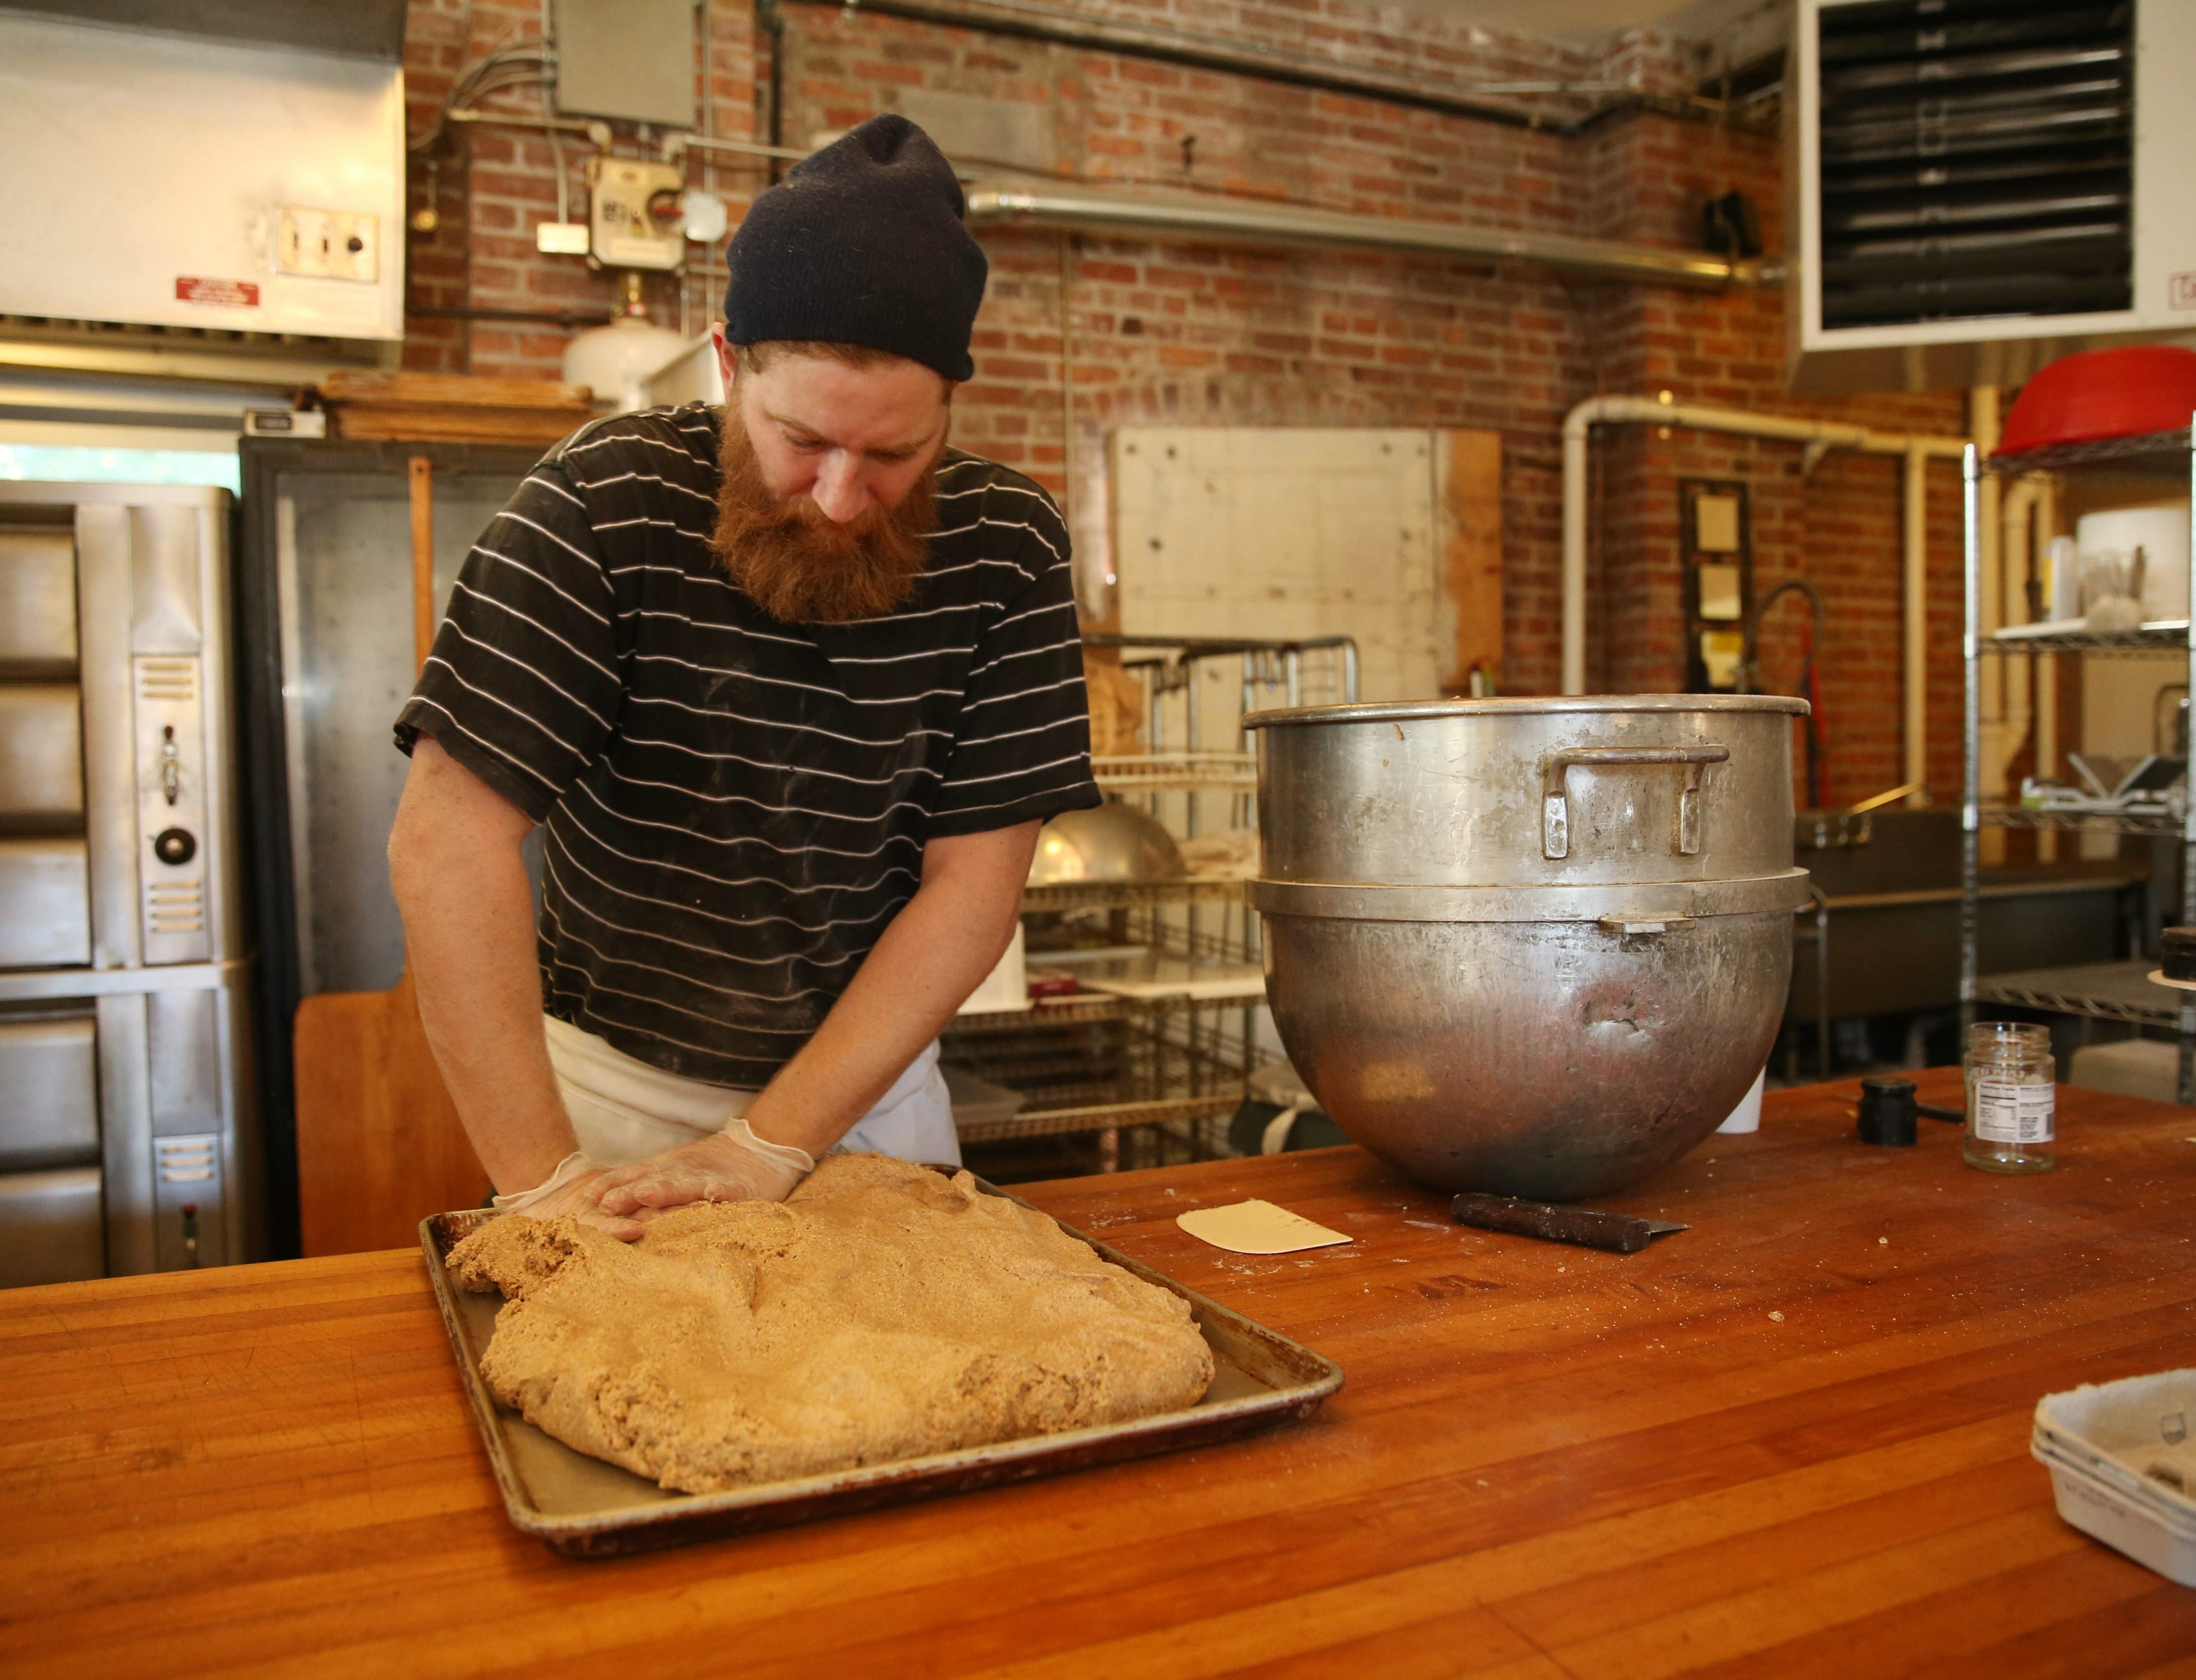 Five Points owner Kevin Gardner spreads dough on a tray where it will sit for 24 hours to help break down phytic acid and enzymes and make it digestible for people with wheat sensitivities. See photo gallery at buffalonews.com.